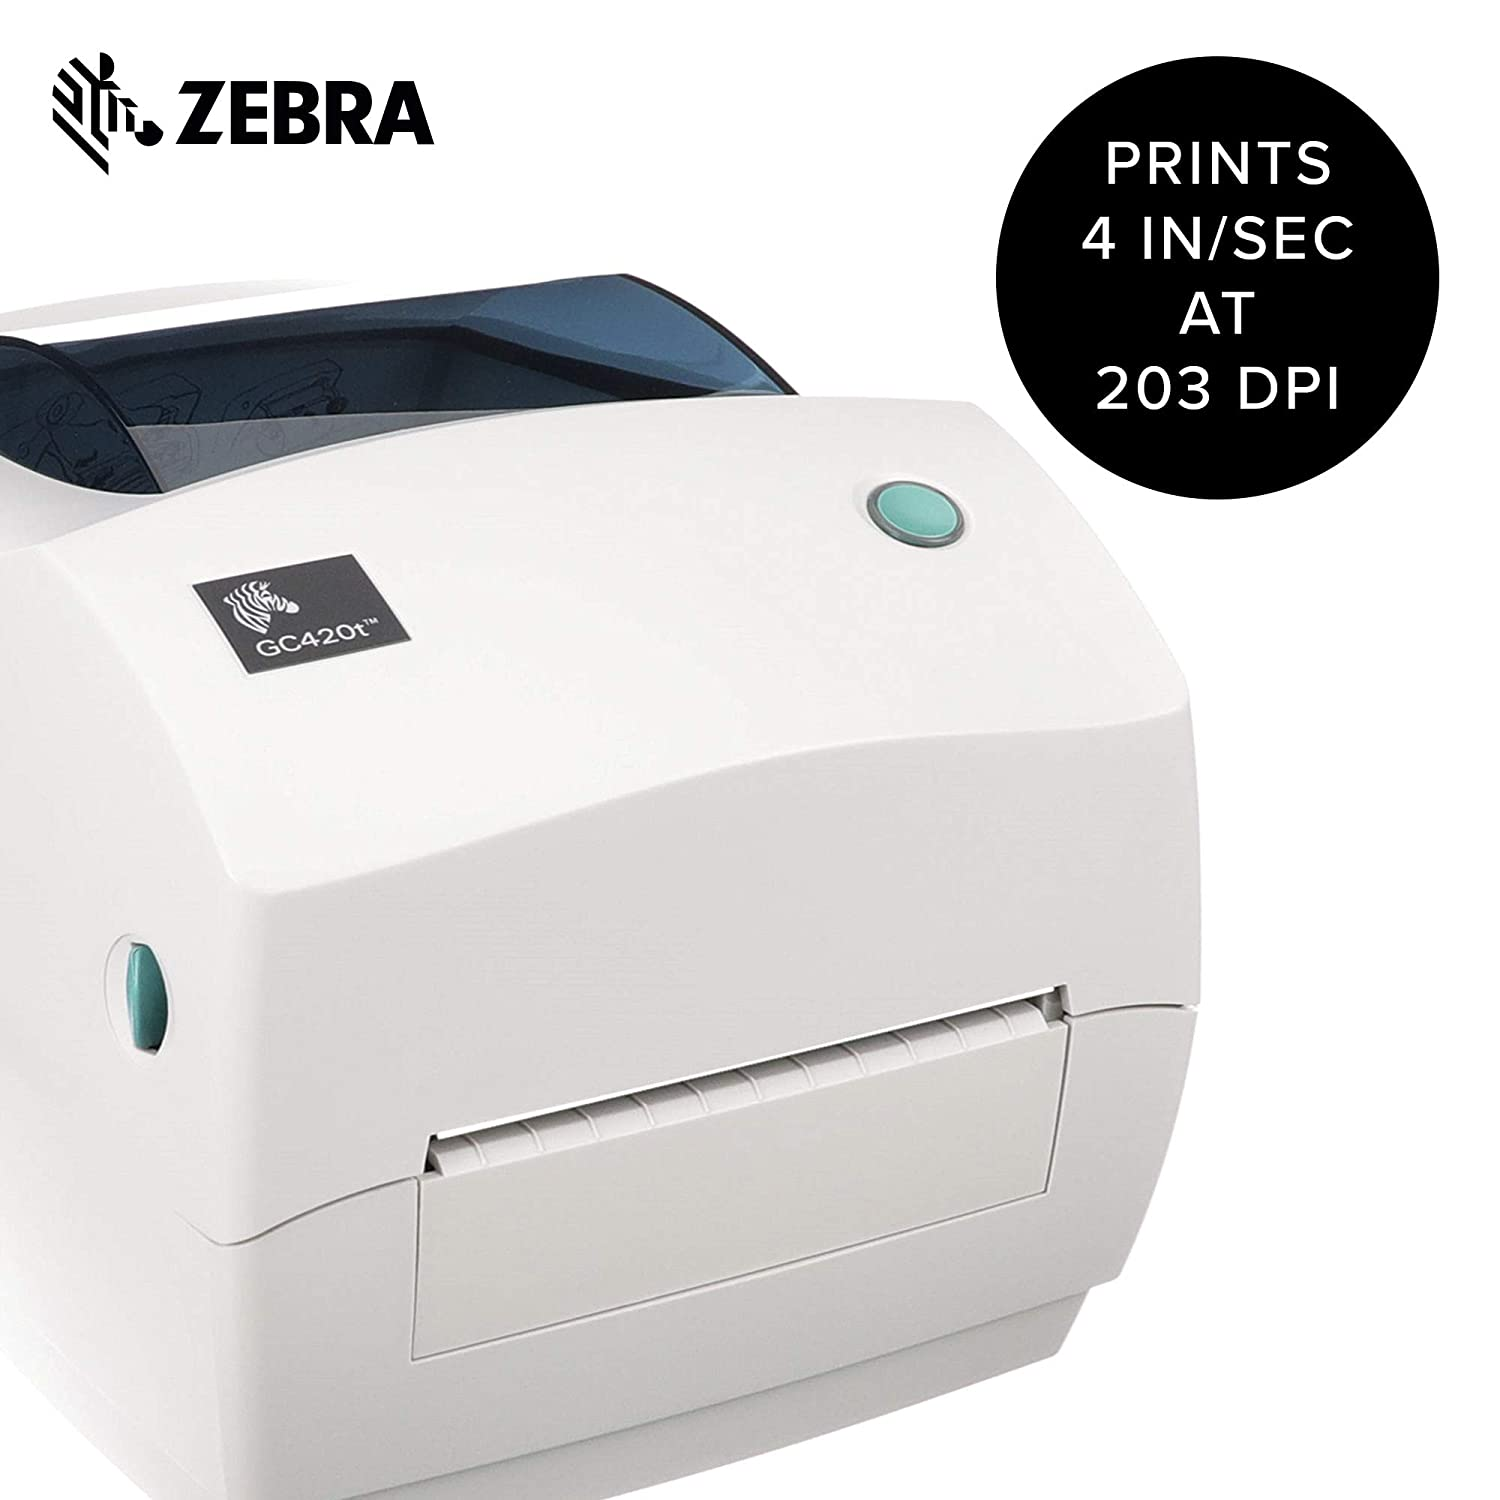 Zebra - GC420t Thermal Transfer Desktop Printer for Labels, Receipts, Barcodes, Tags, and Wrist Bands - Print Width of 4 in - USB, Serial, and ...